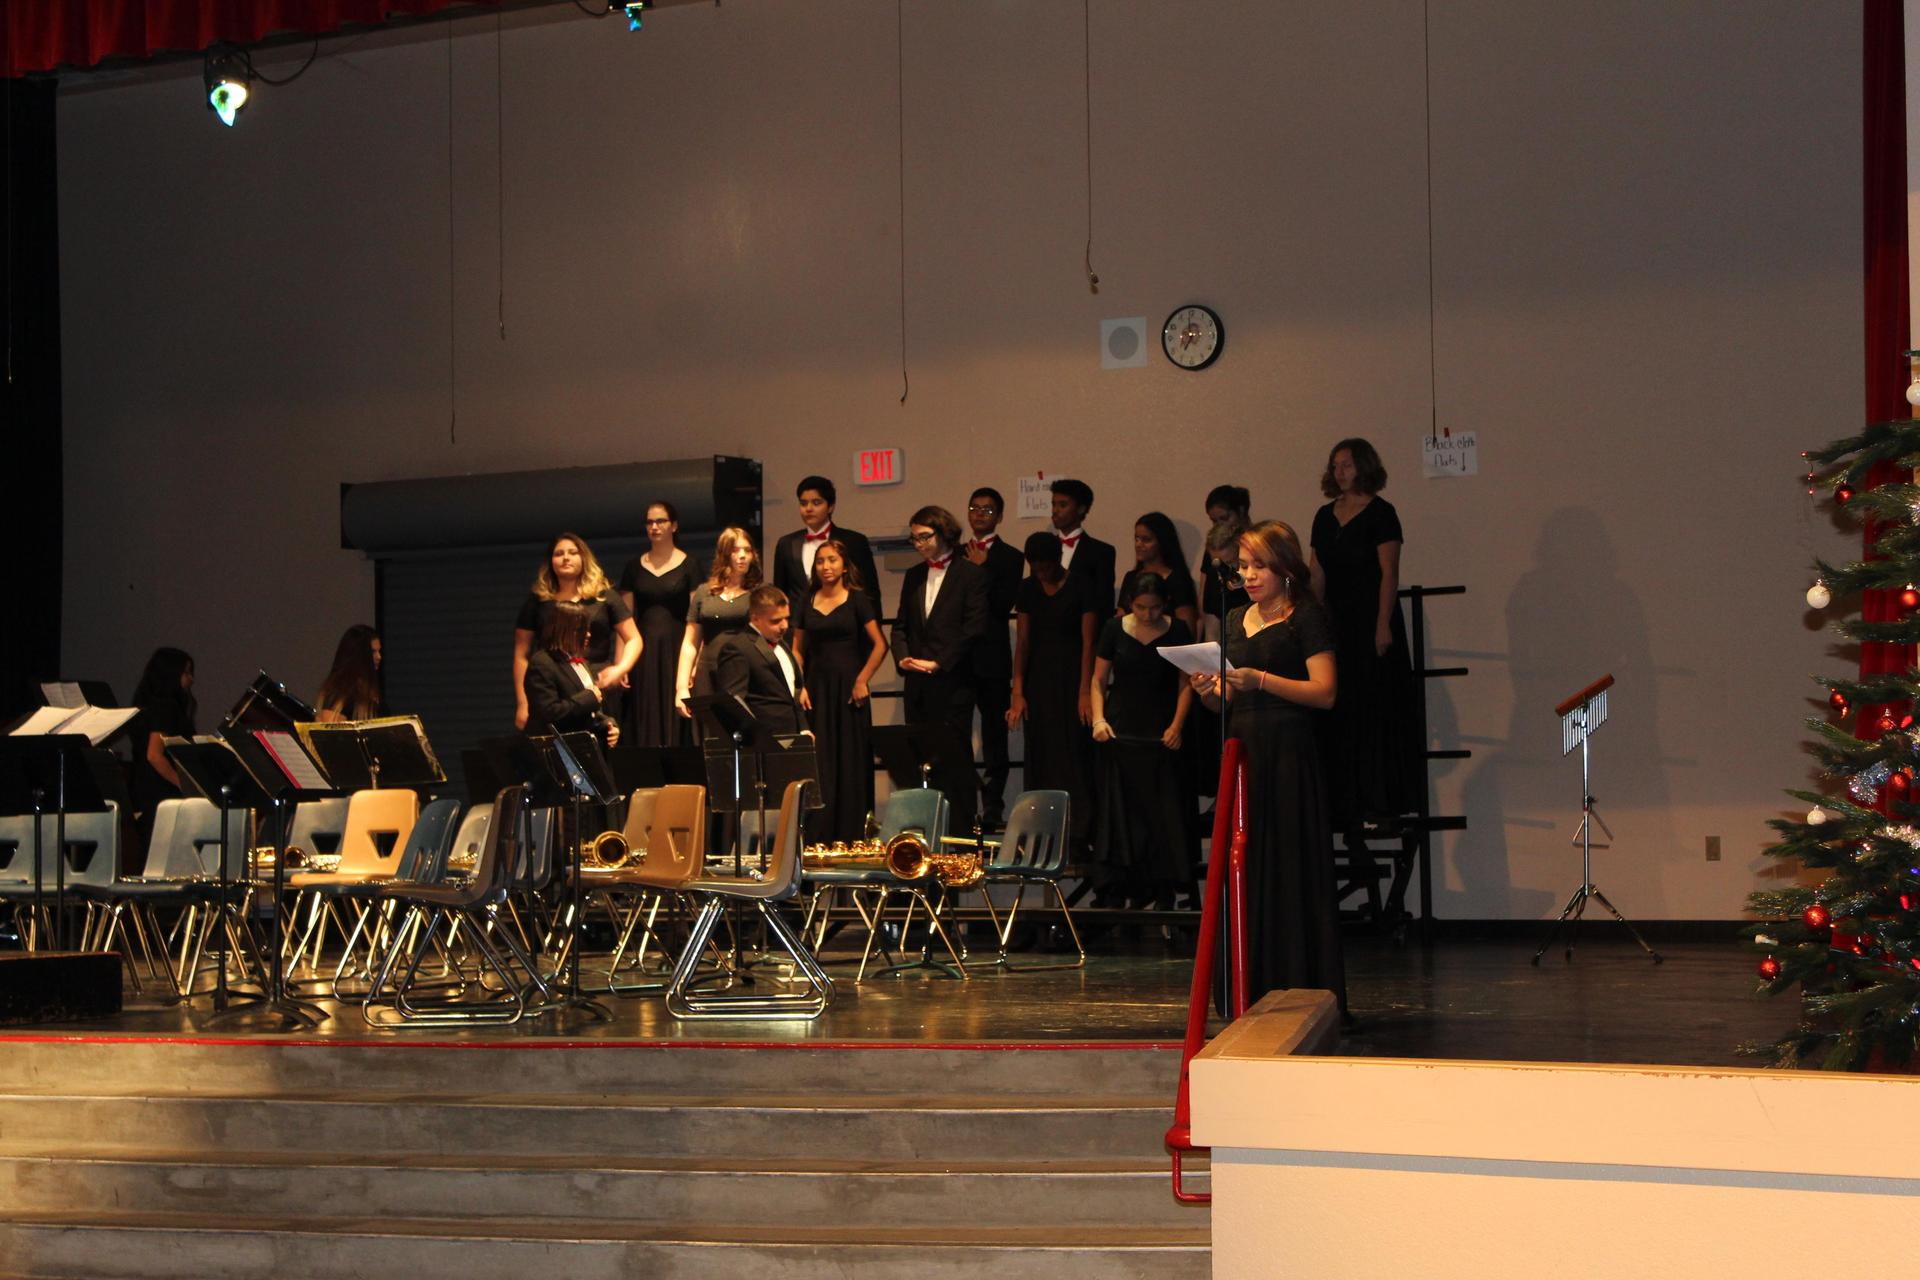 The CUHS Choir is introduced.